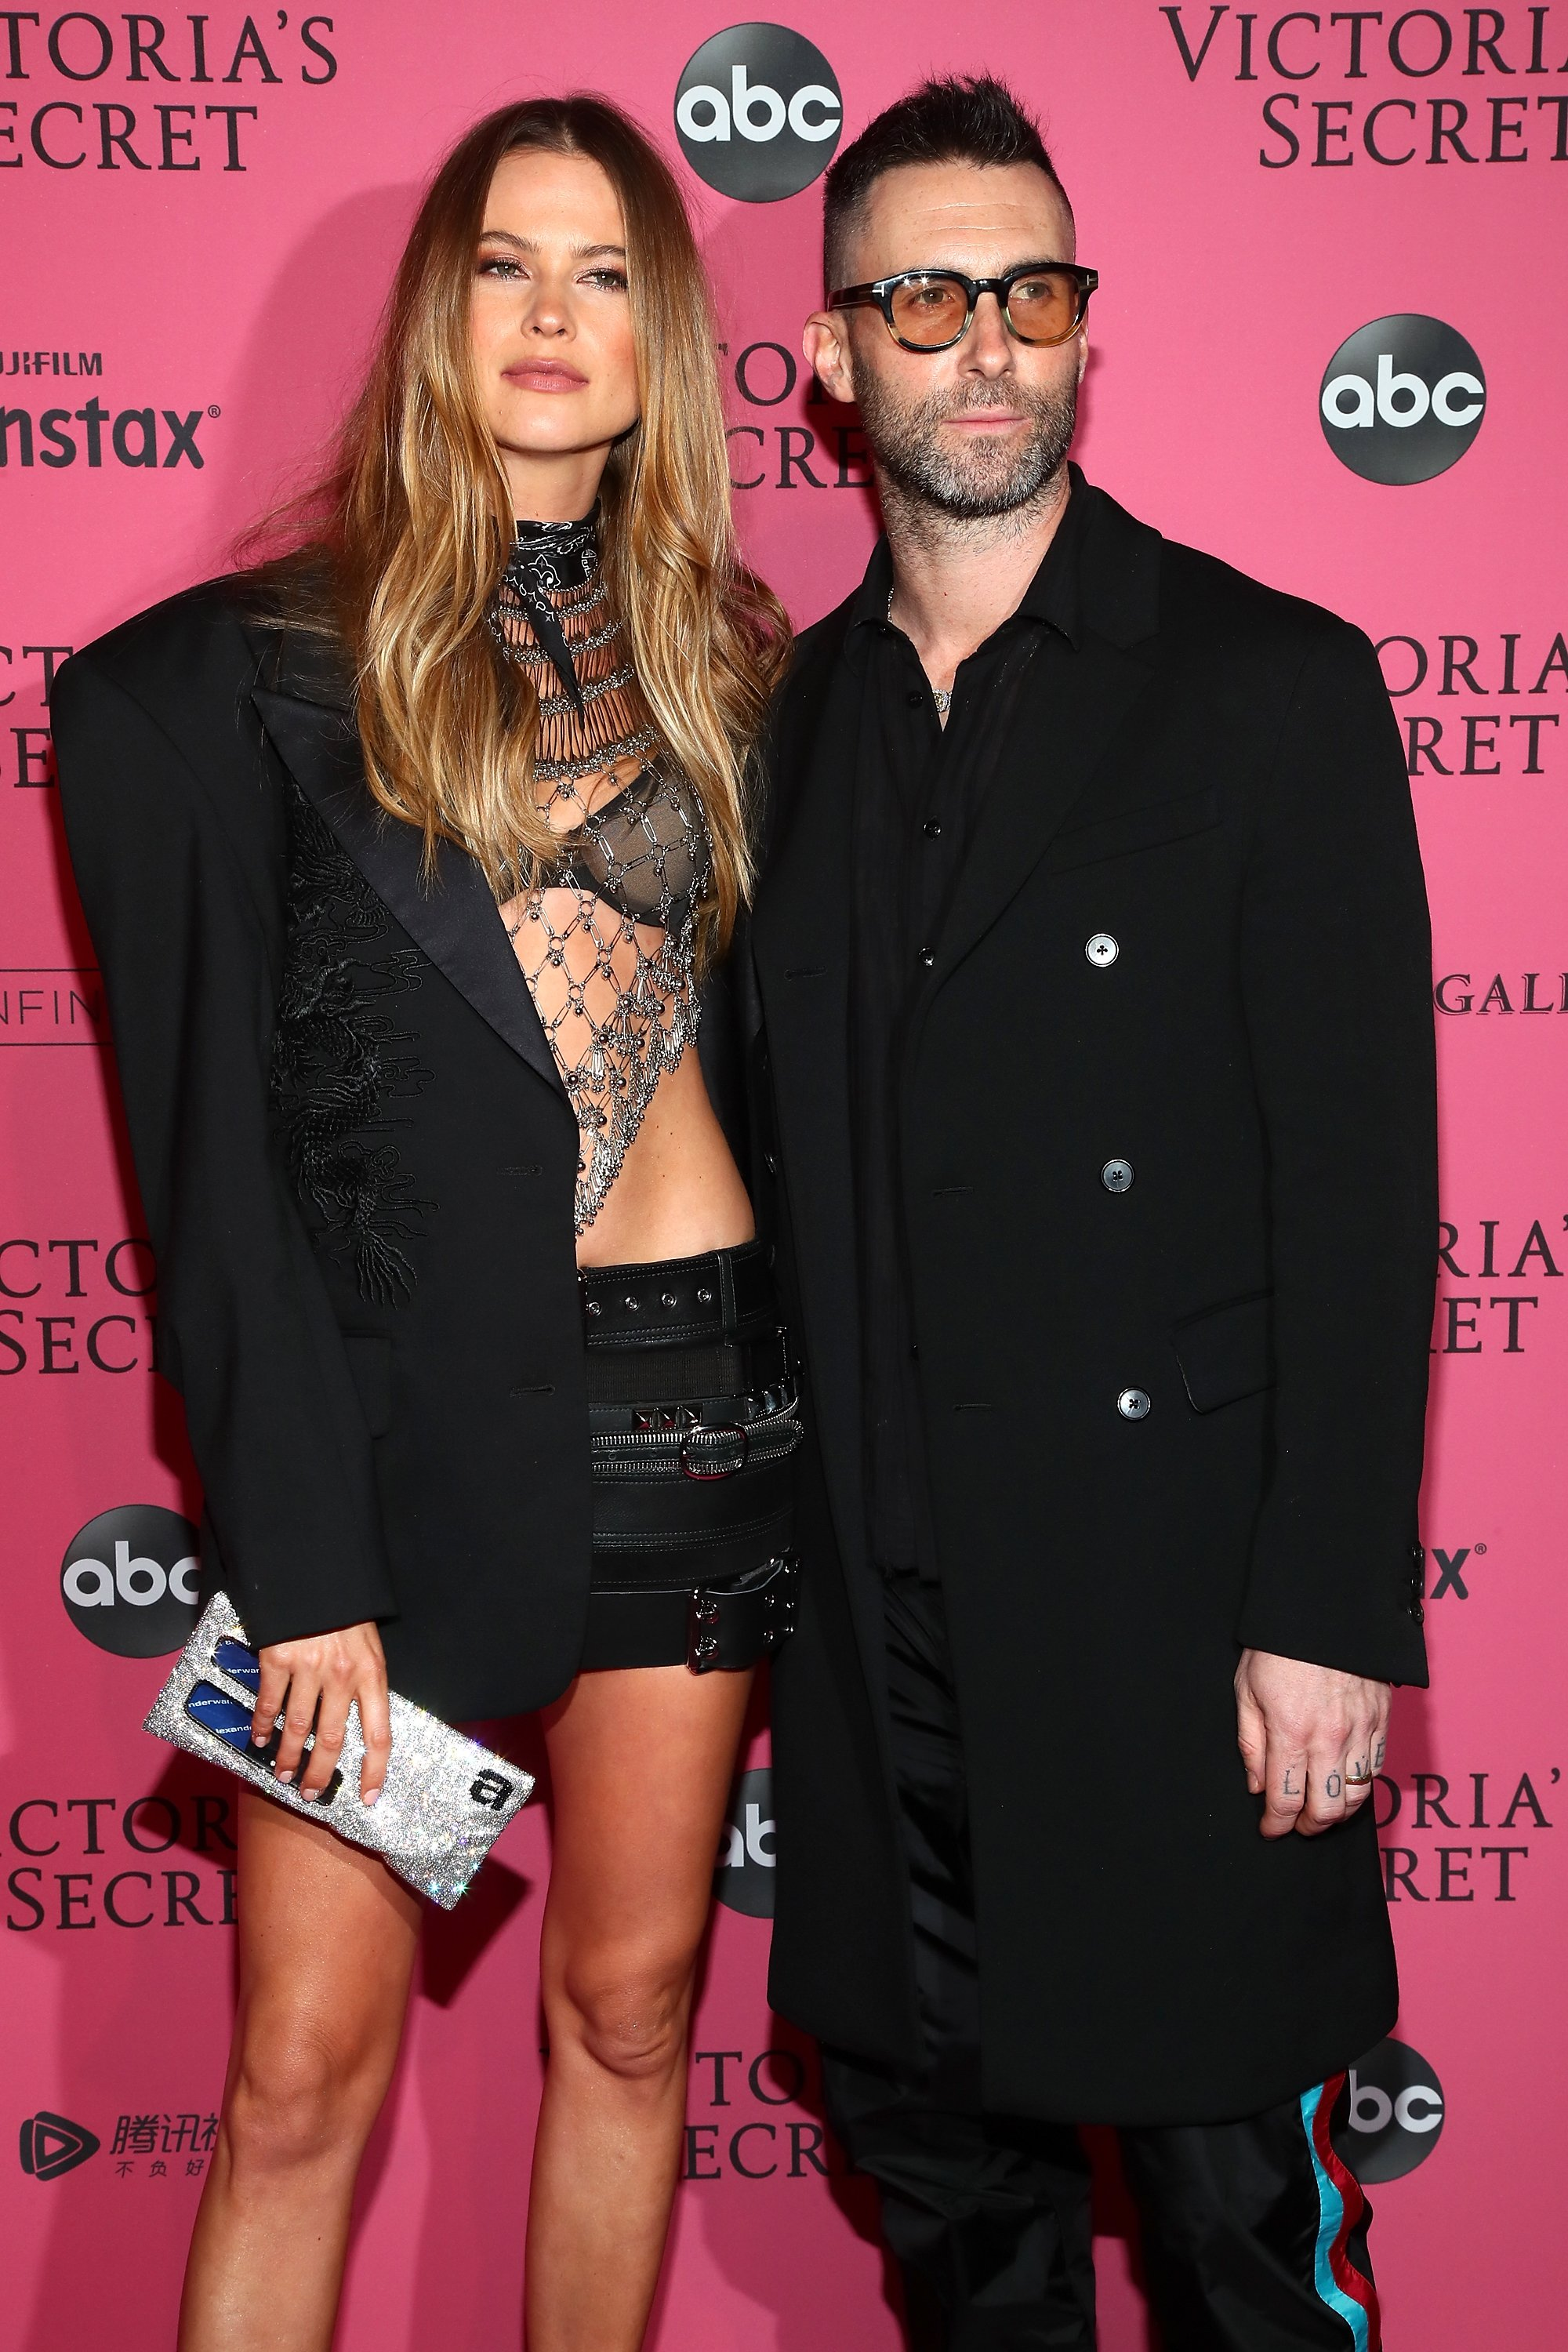 Behati Prinsloo and Adam Levine at the Victoria's Secret Fashion Show After Party on November 8, 2018 | Photo: Getty Images